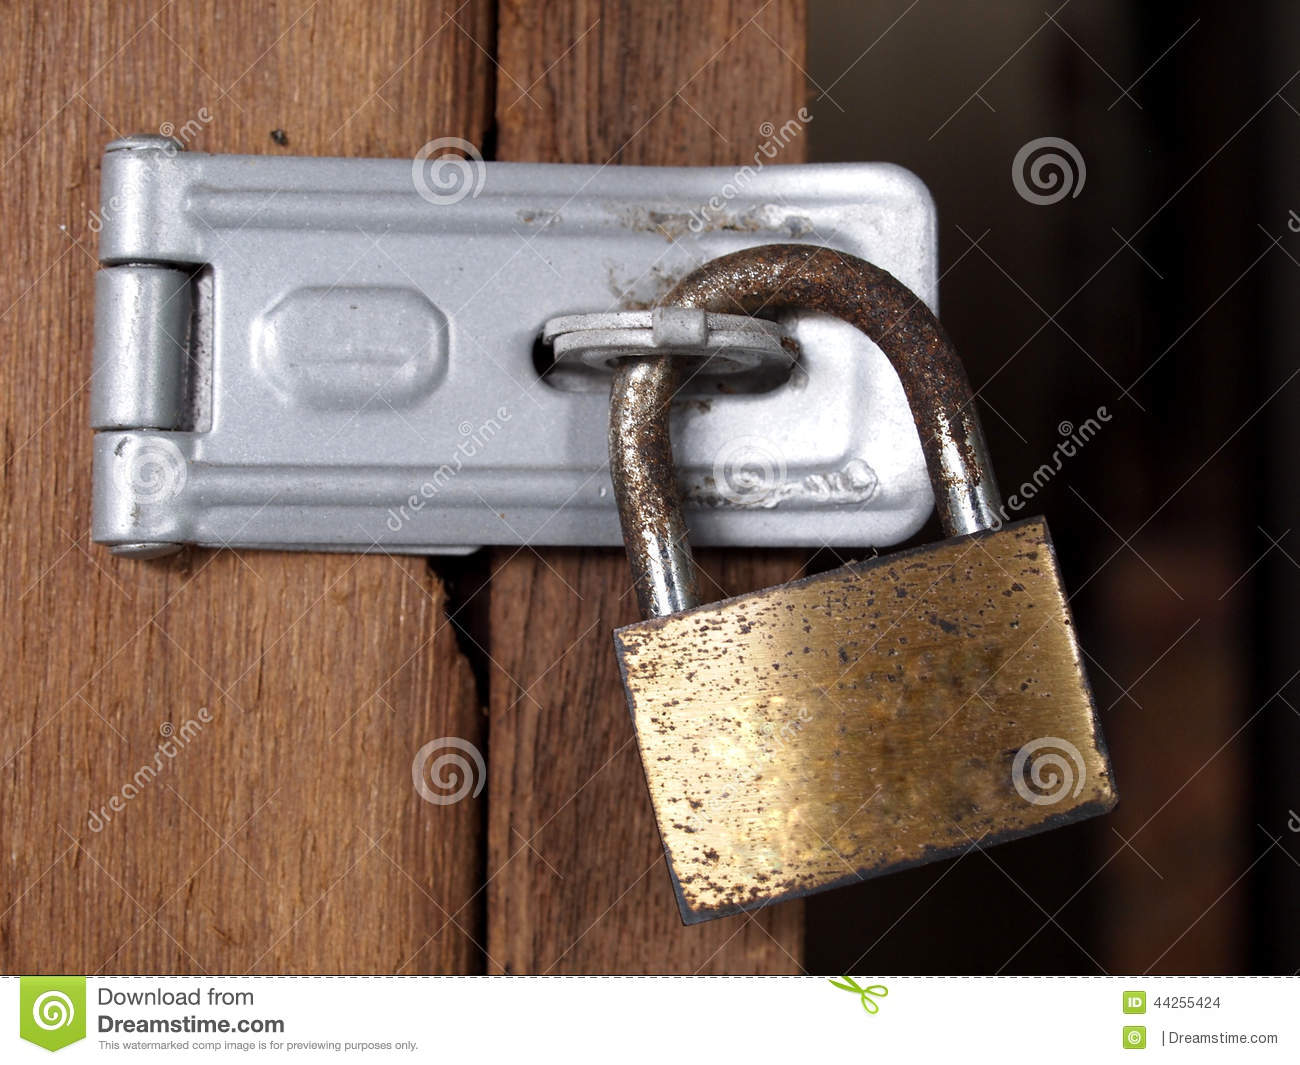 Rusty Lock and Hinge stock photo. Image of peel, secure - 179880